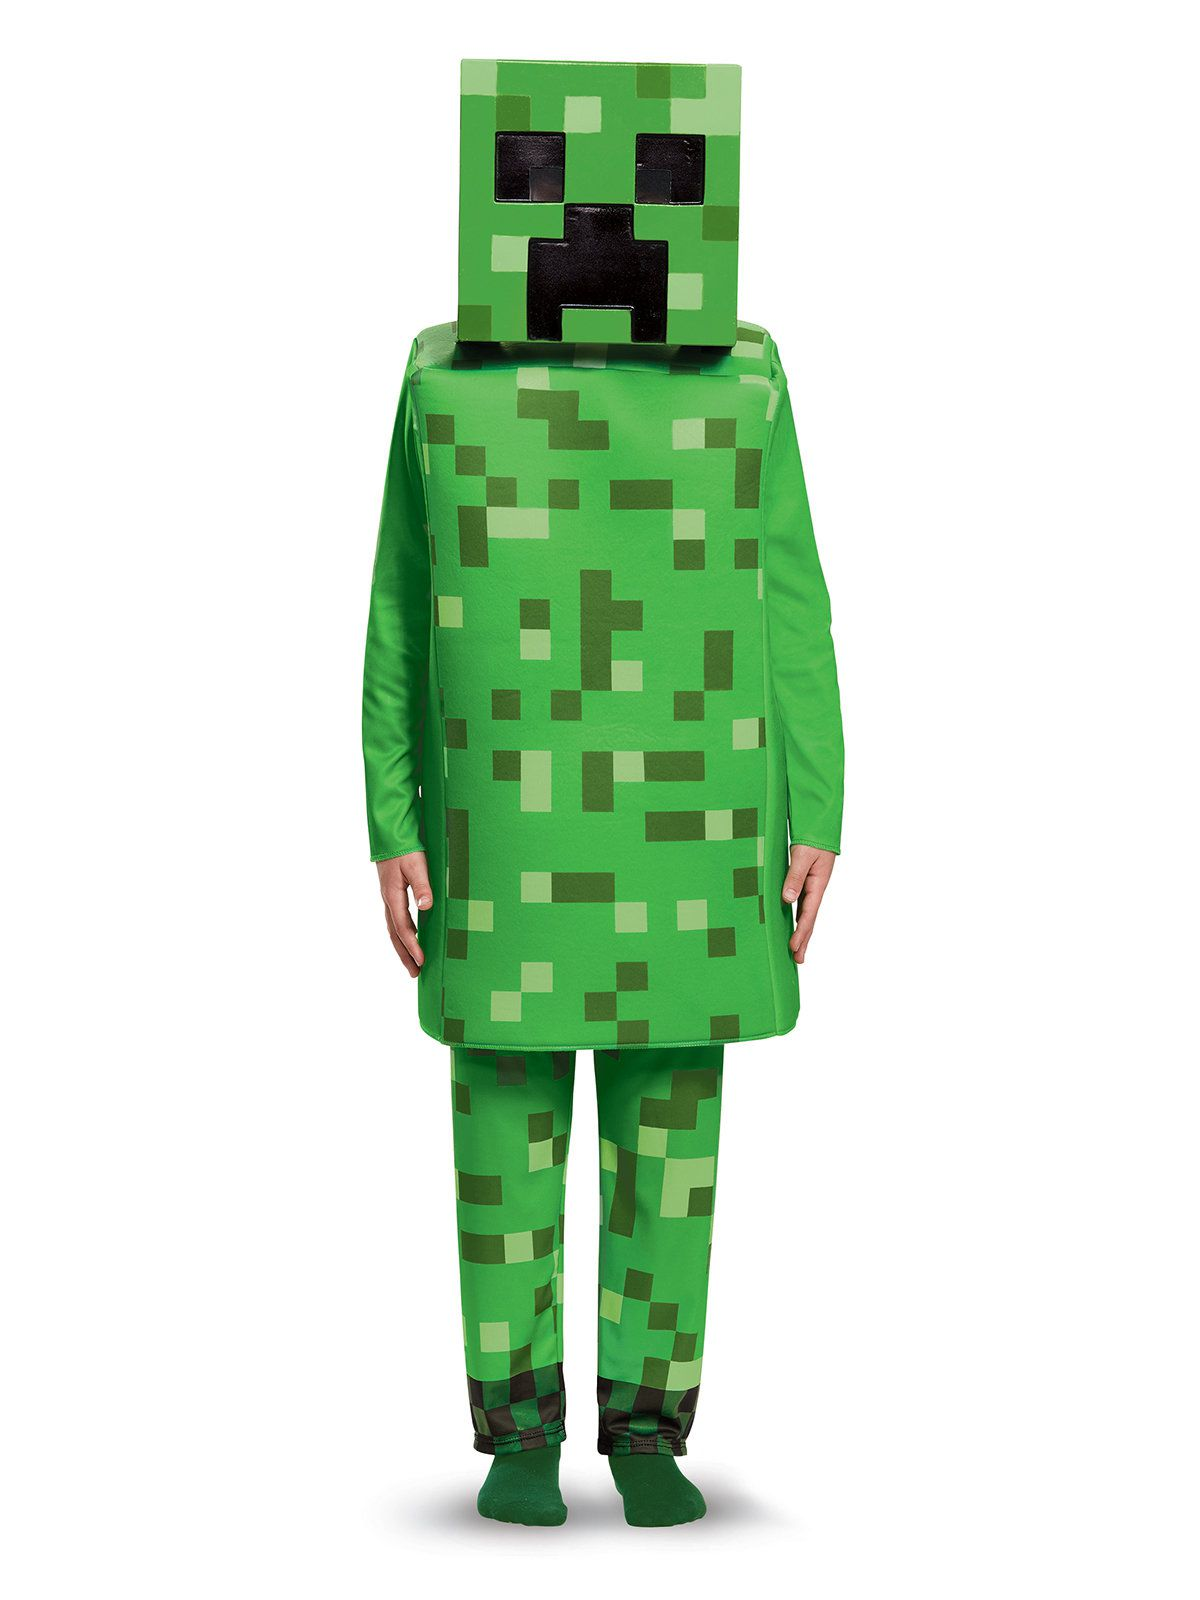 Child Deluxe Creeper Minecraft Costume Boys Costumes For 2019 Wholesale Halloween Costumes